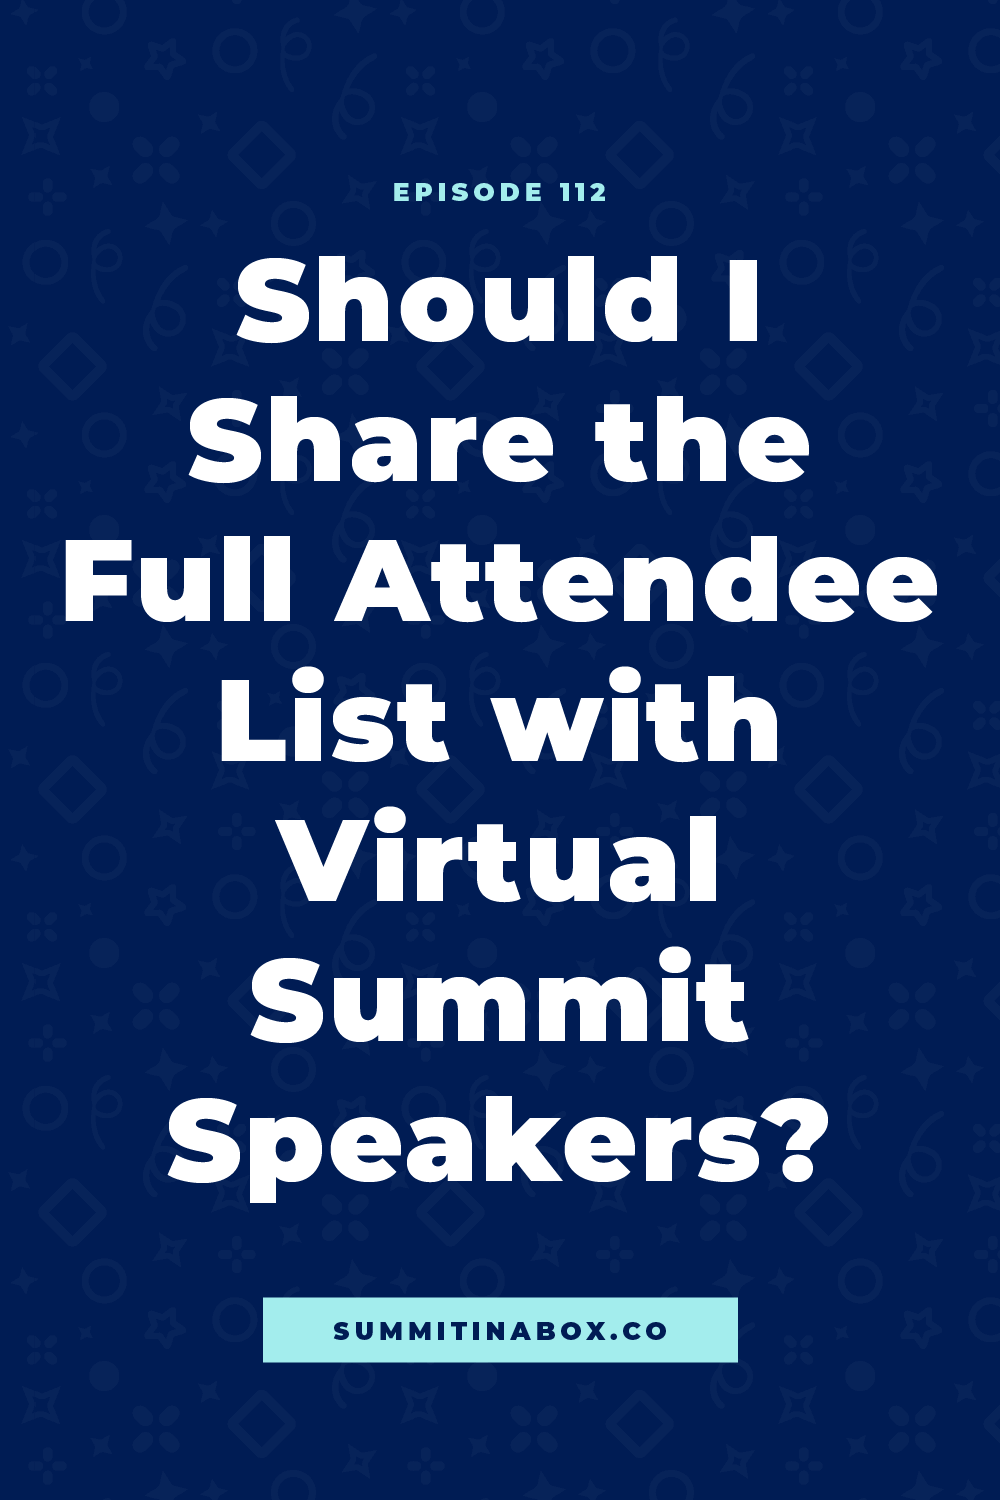 We all want our speakers to benefit, but how? Today, we'll break down whether or not you should share the full attendee list with virtual summit speakers.